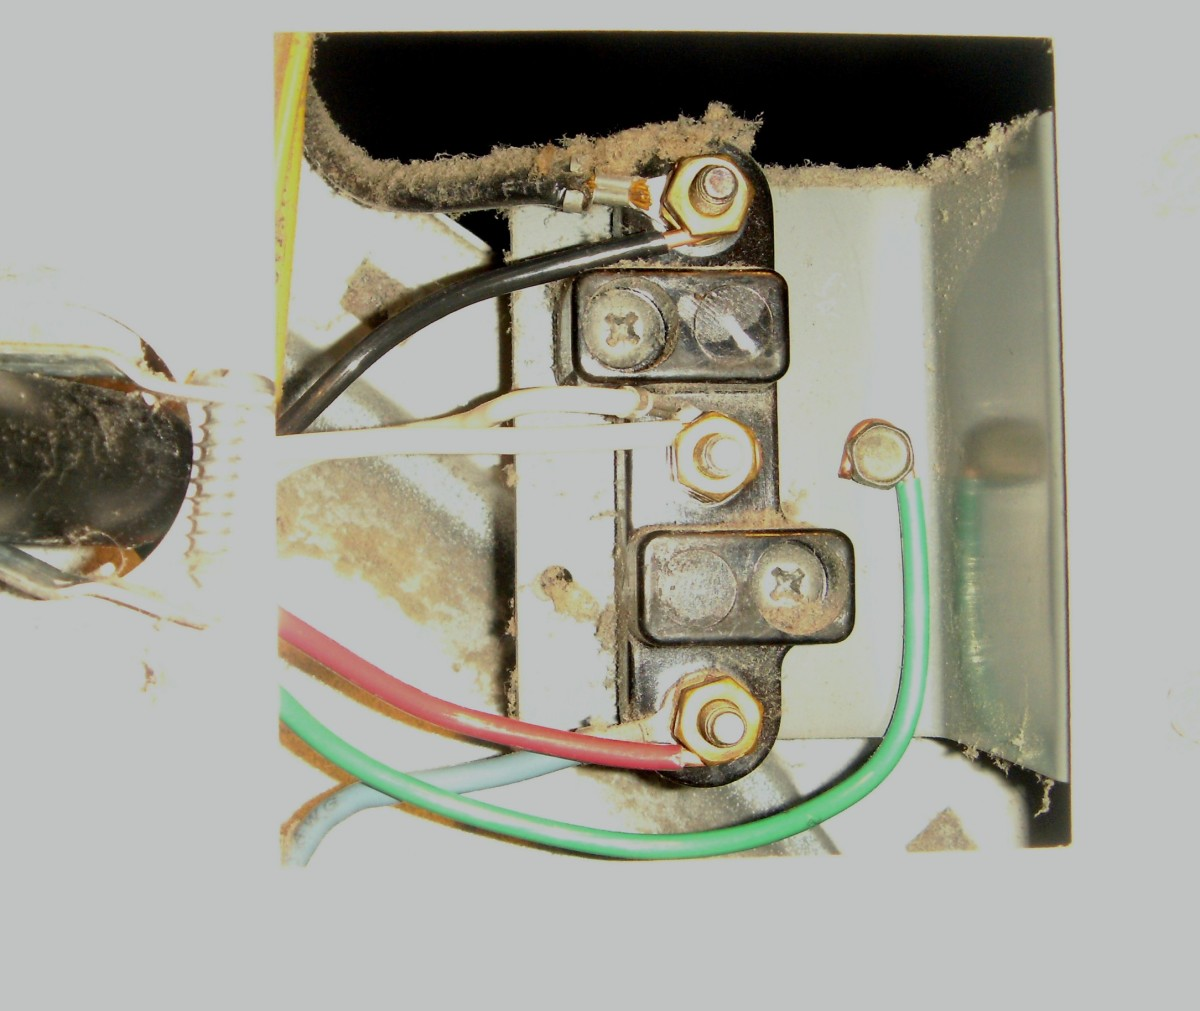 Changing A 3 Prong To 4 Prong Dryer Cord And Plug